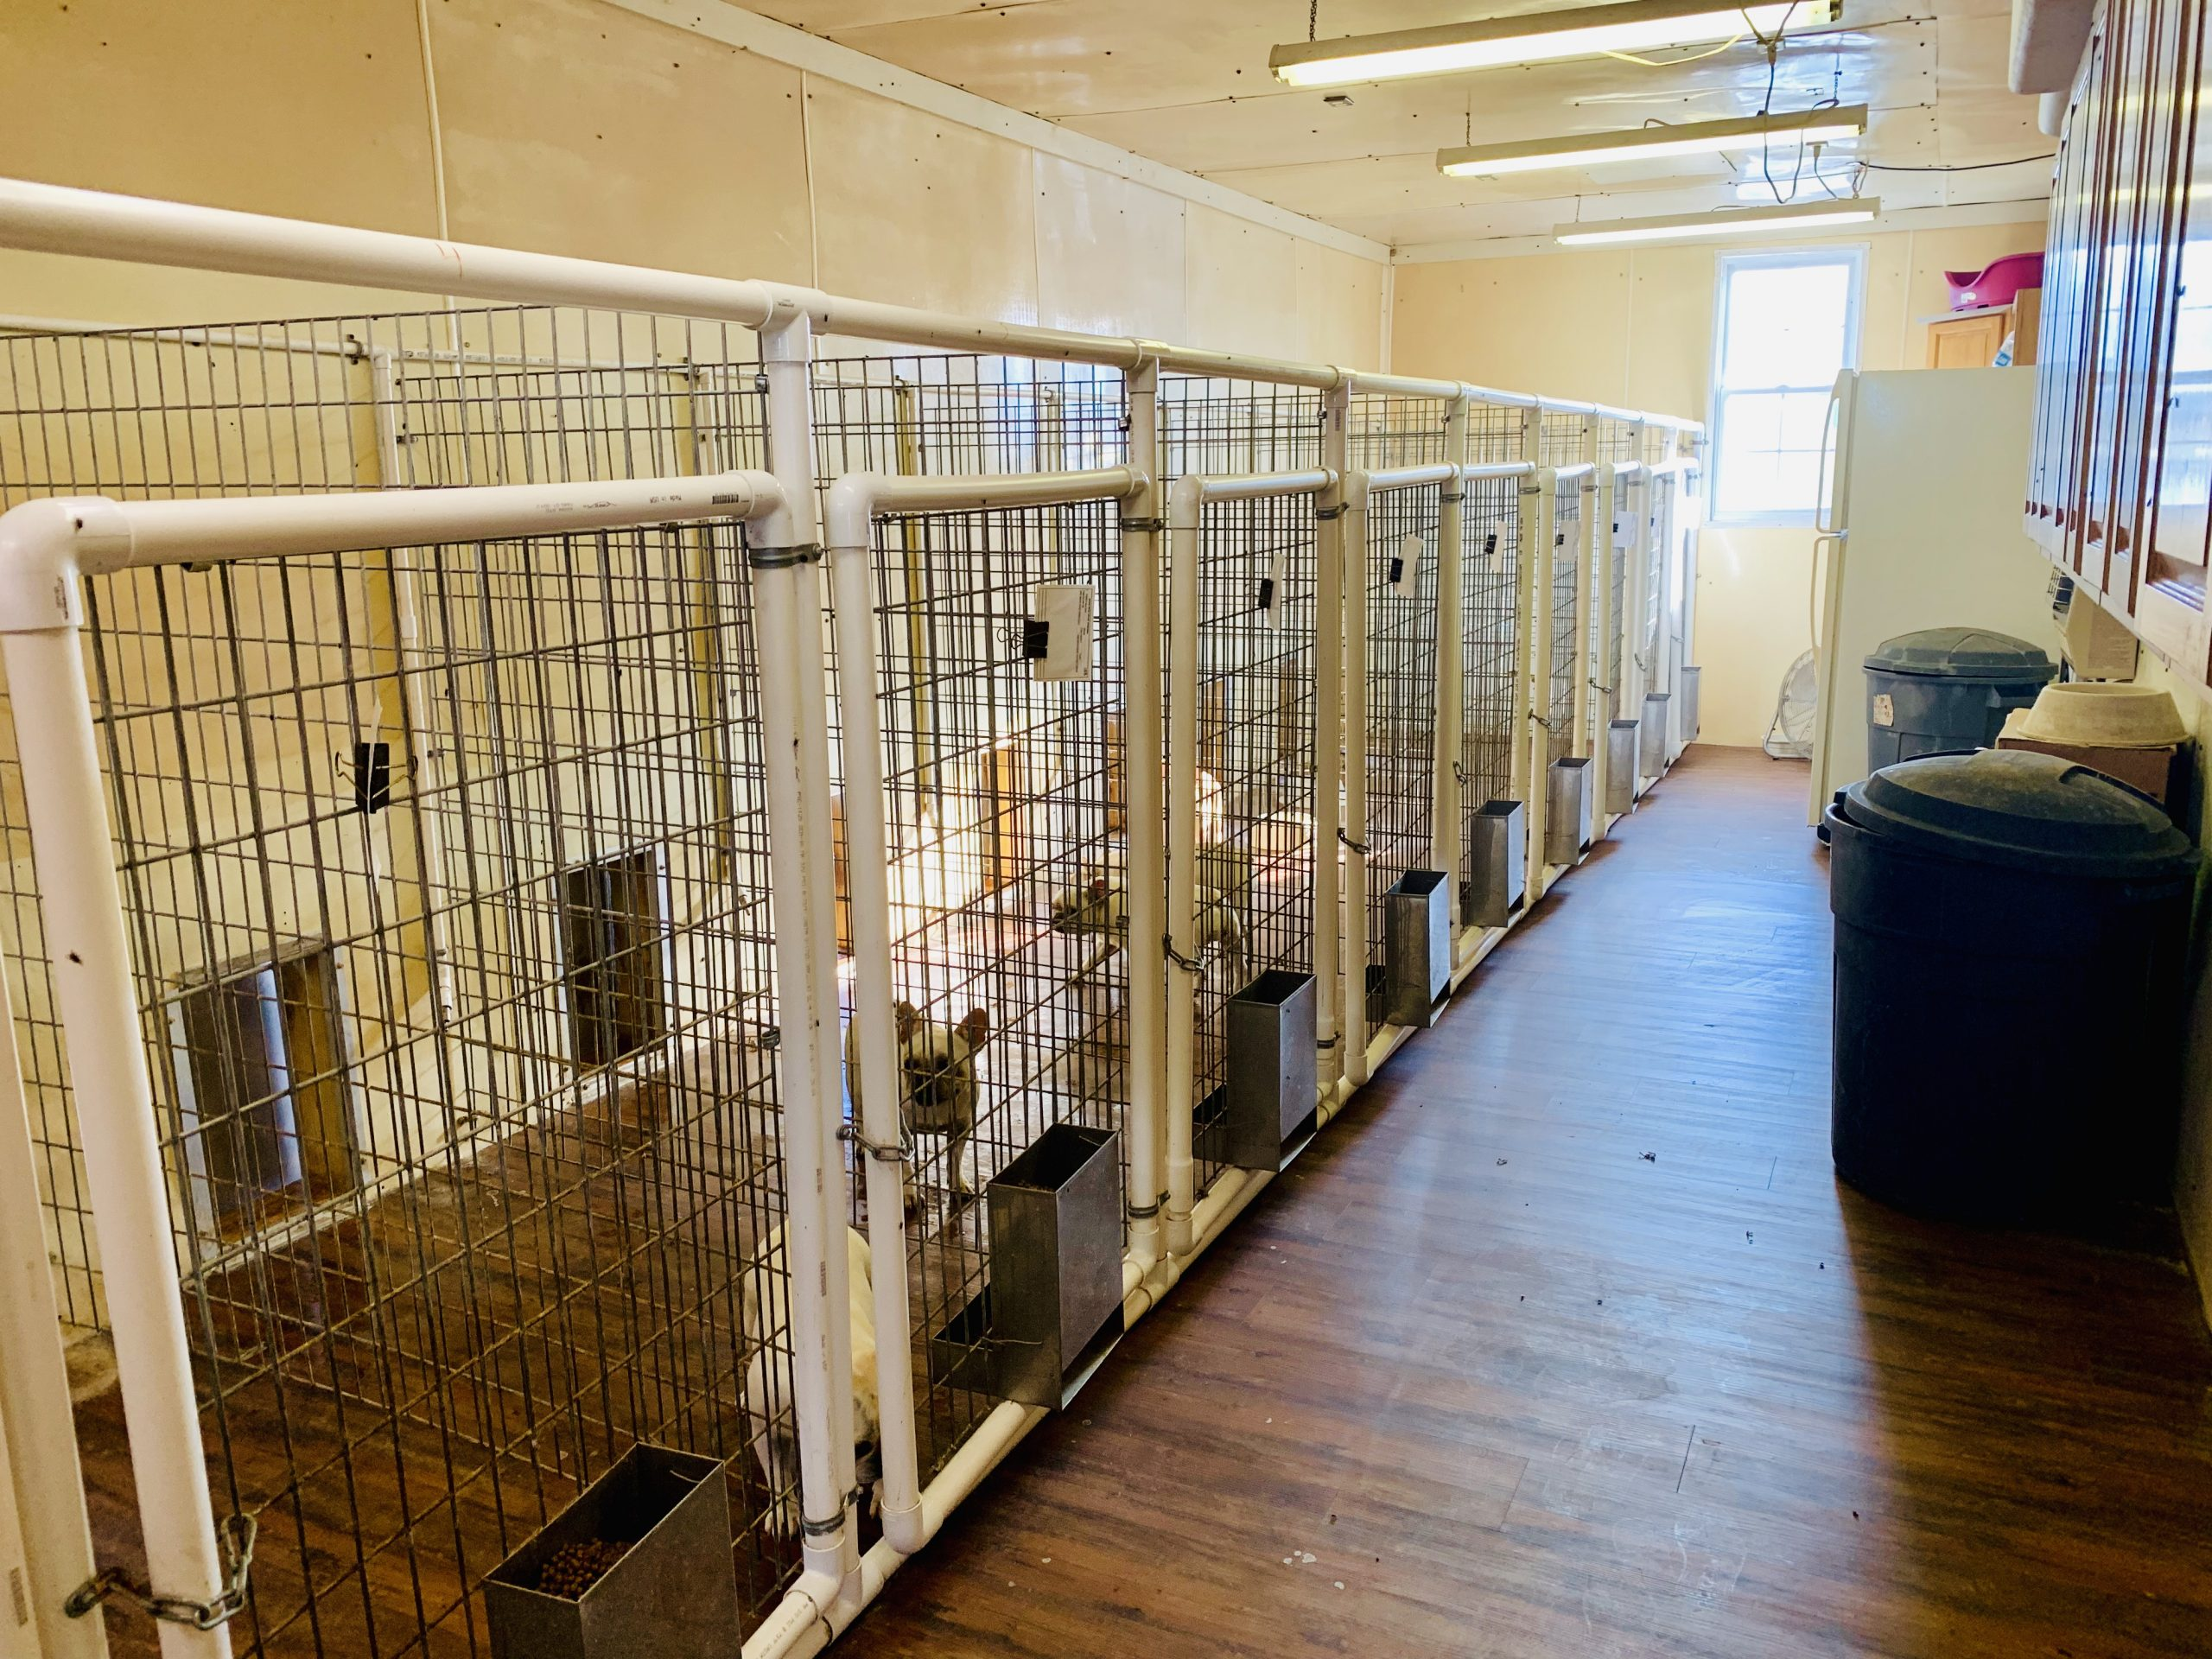 Interior view of Kim's kennel